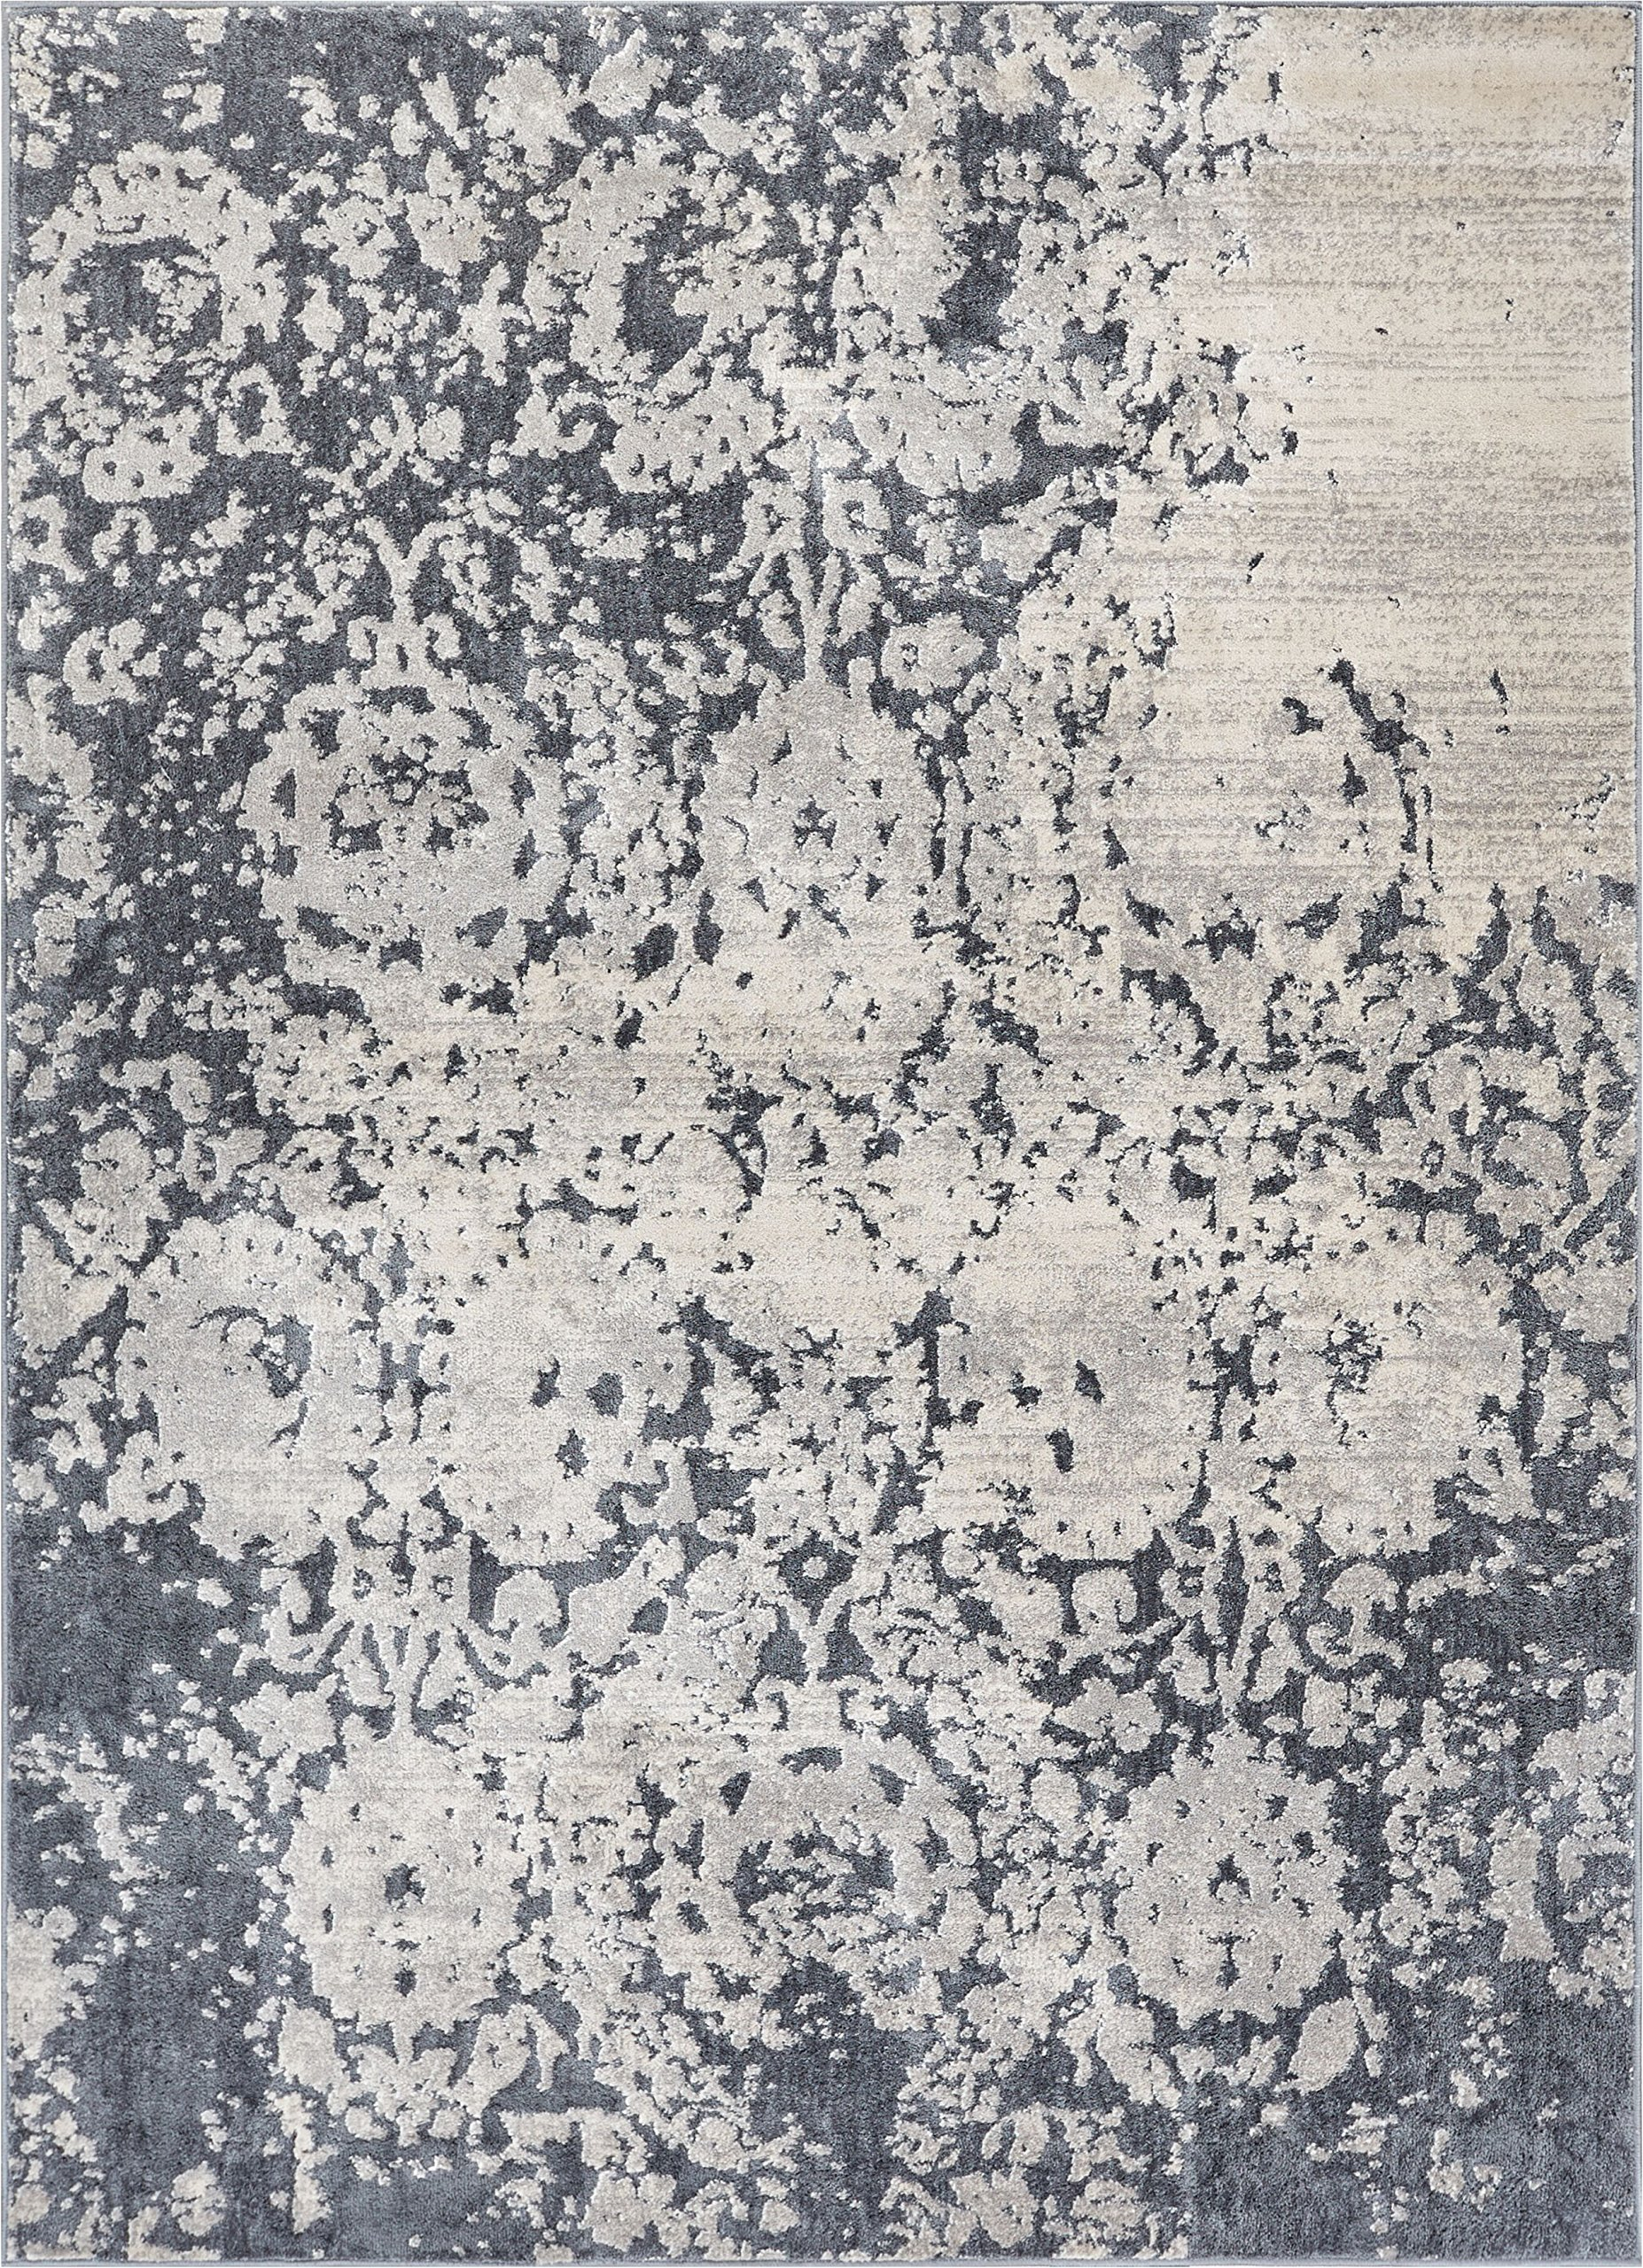 Forte Grey Microfiber High-Low Pile Vintage Abstract Erased Floral 8x10 (7'10'' x 9'10'') Area Rug Modern Oriental Carpet by Well Woven (Image #1)